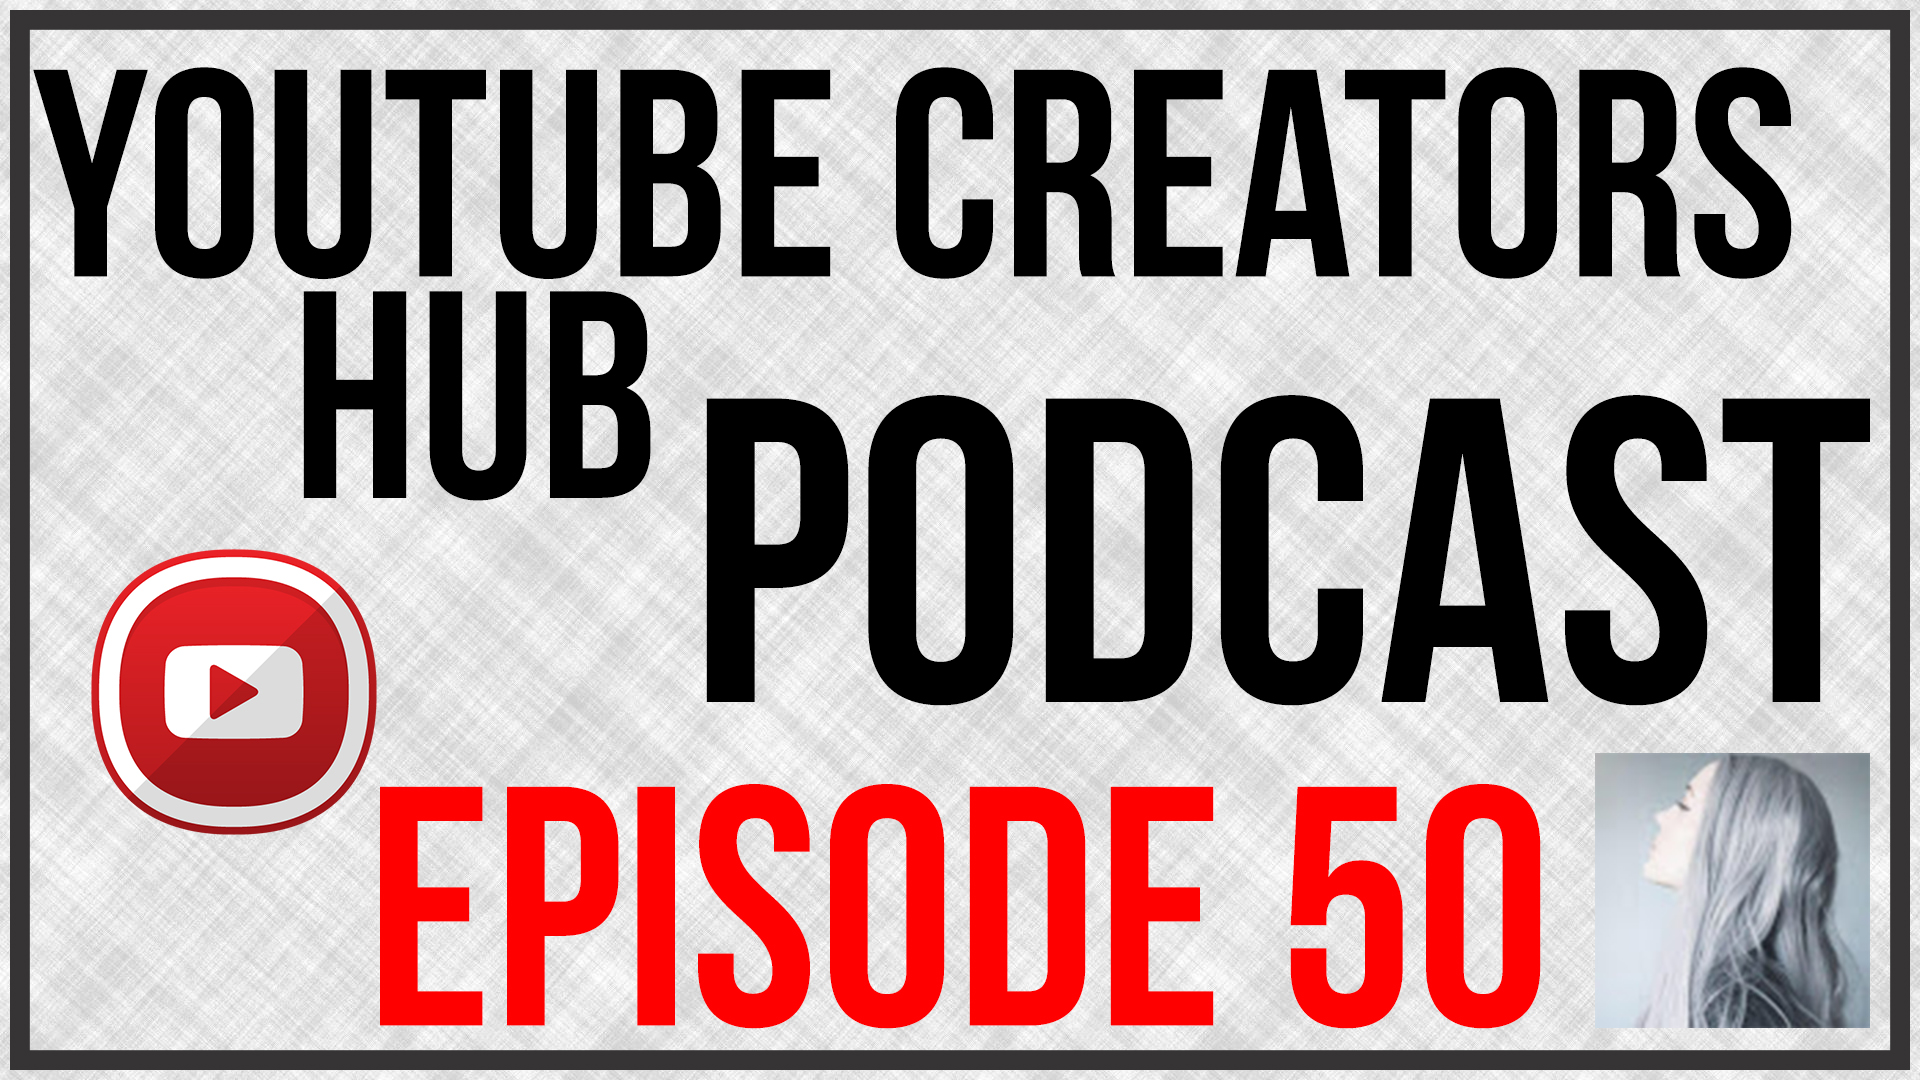 YouTube Creators Hub Podcast Episode 50